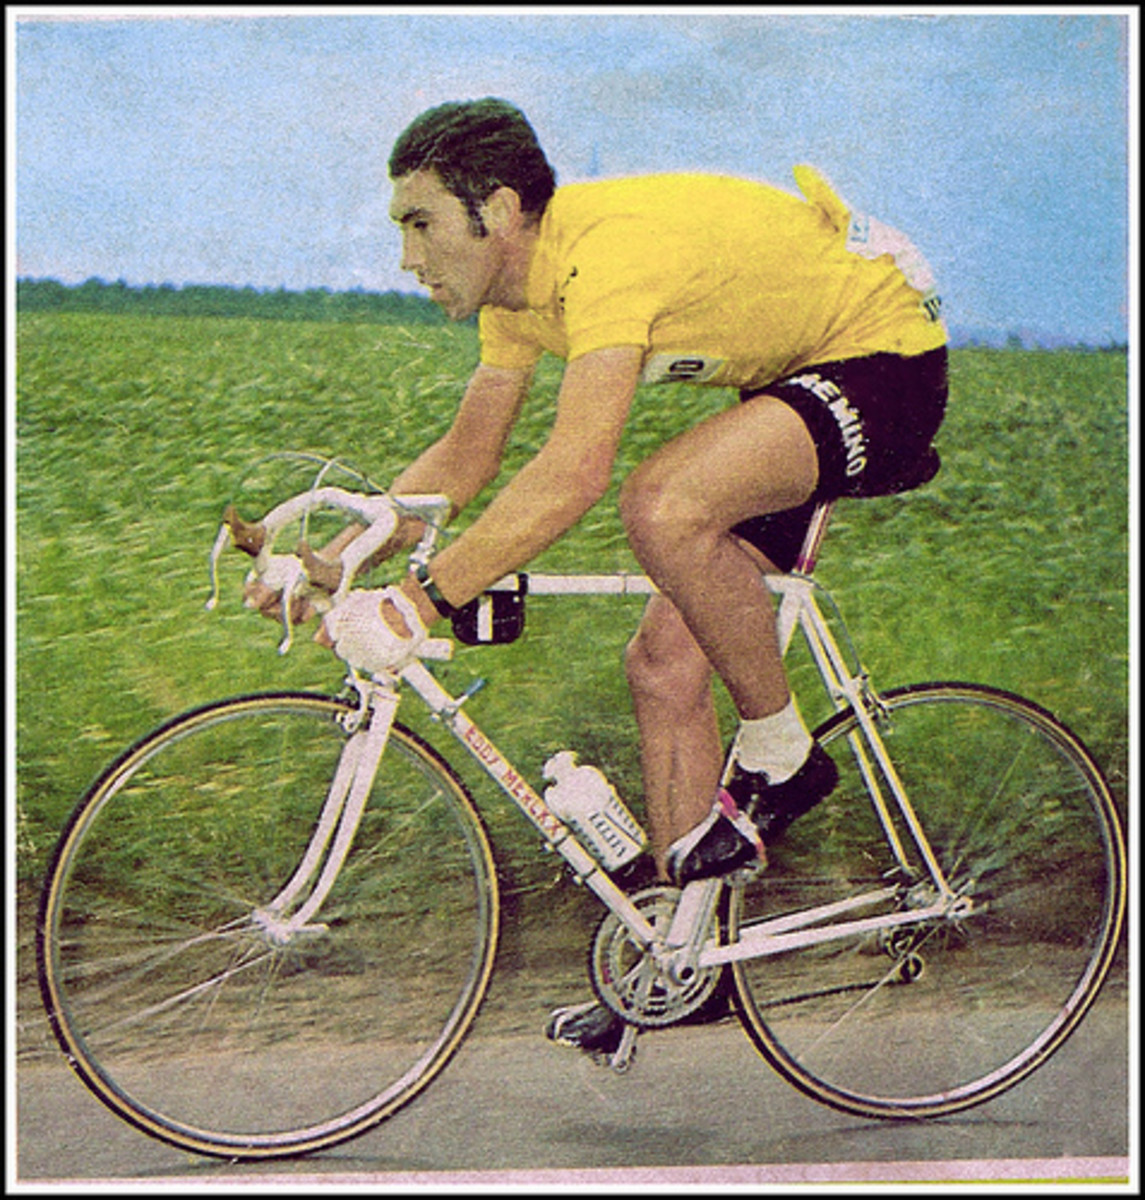 Eddy Merckx in racing action. Eddy was arguably the best cyclist in the history of the sport